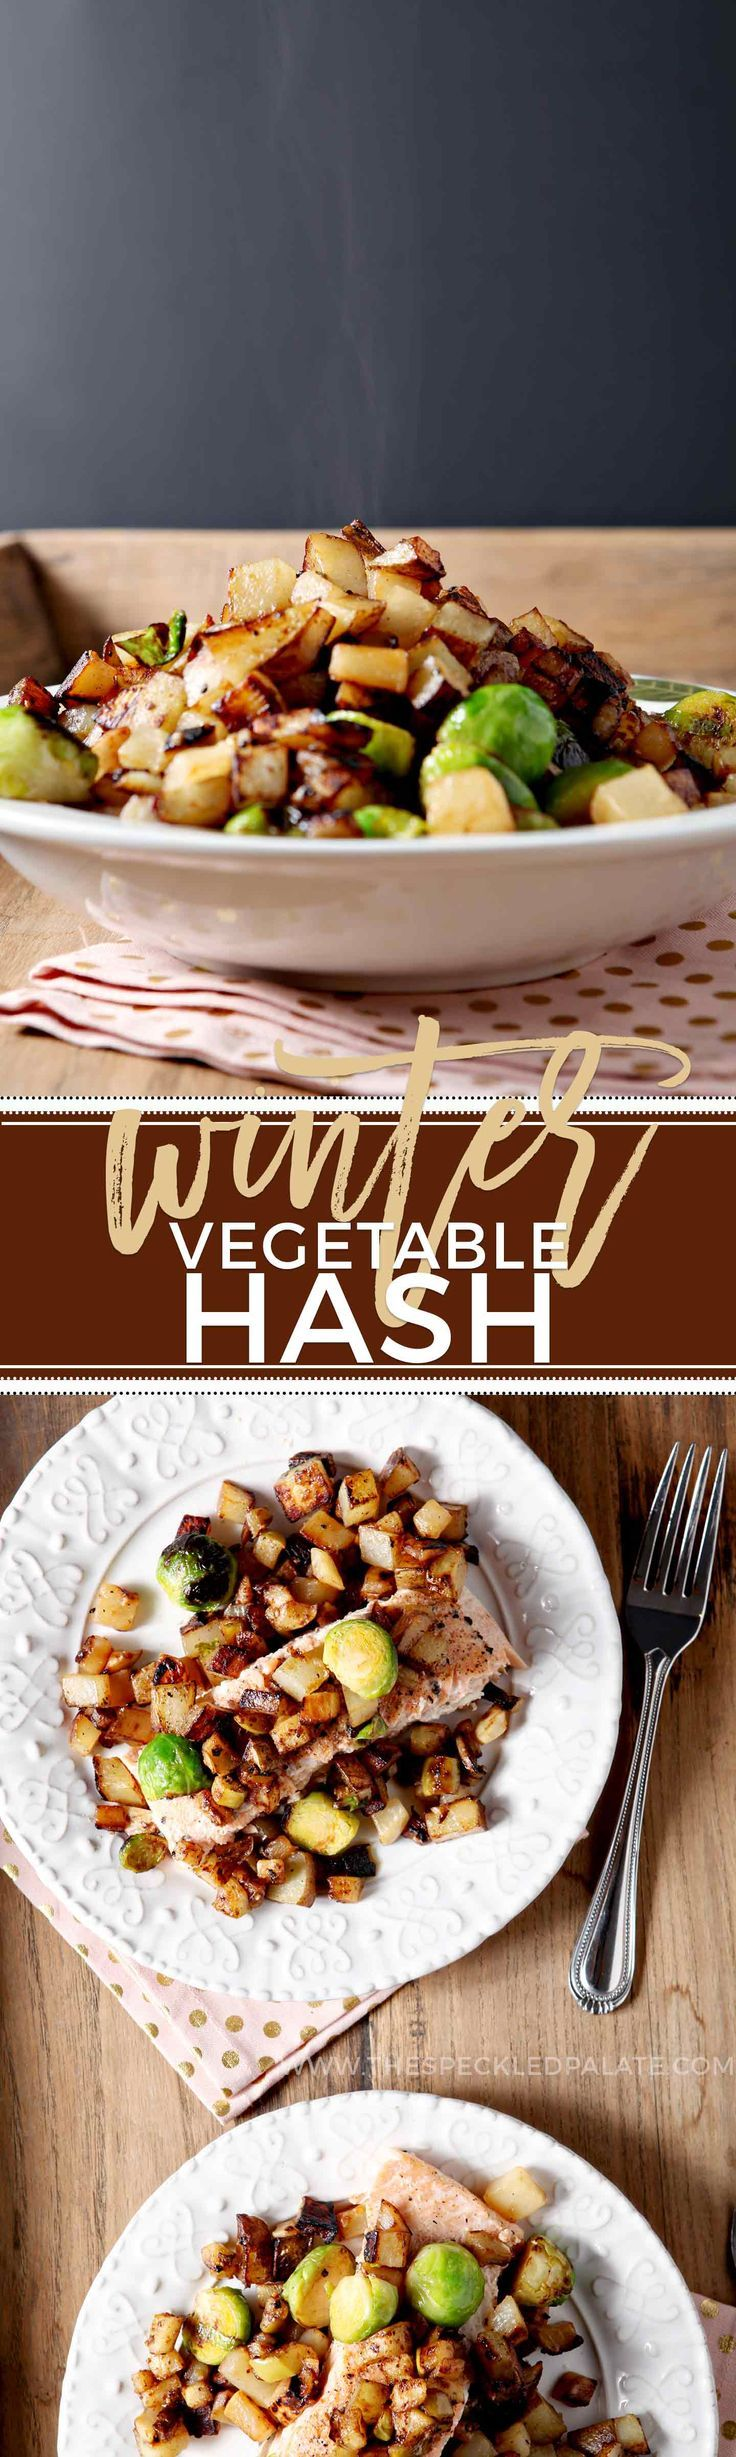 Let's make Winter Vegetable Hash! This hash features winter veggies like potato, purple turnip and Brussels sprouts and pairs with a tart Granny Smith apple hash to top your favorite protein. Apples cook in olive oil with Dijon mustard, then are kept warm while the potatoes and turnips crisp up and soften. Add Brussels sprouts to the mix and cook until browned. Enjoy the wintertime vegetable harvest by enjoying Winter Vegetable Hash with dinner.